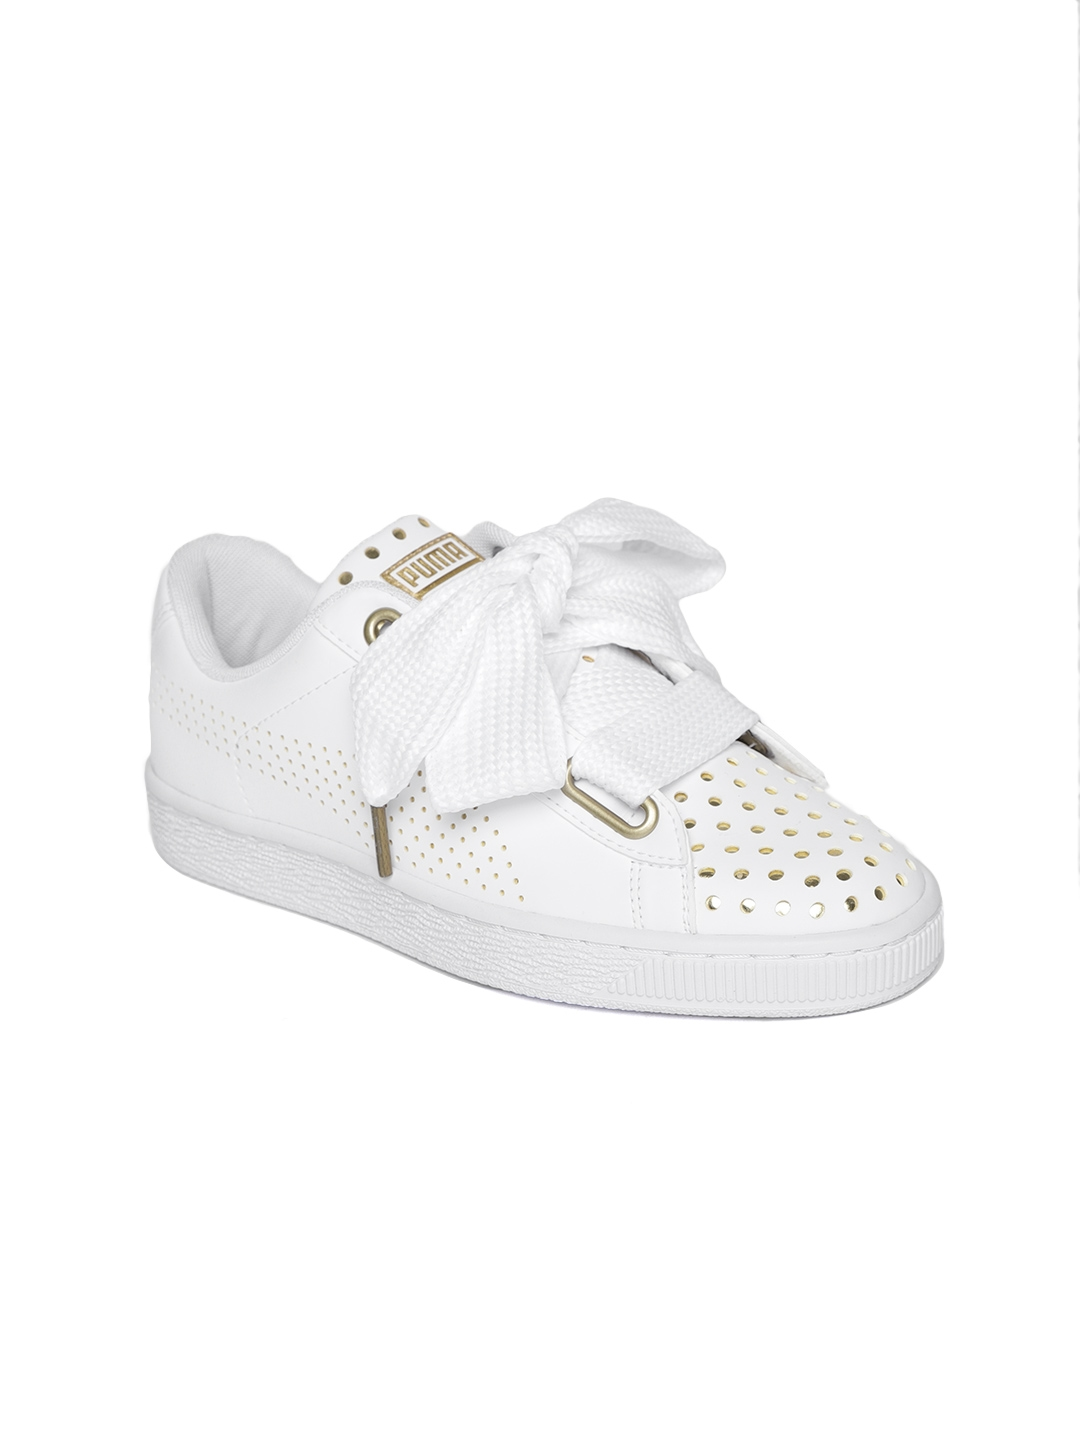 sale retailer 339a6 dc61e Puma Women White Basket Heart Ath Lux Leather Sneakers